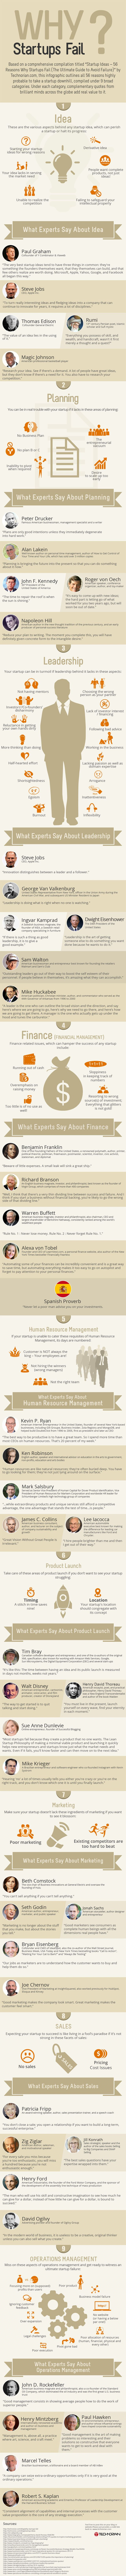 Why Startups Fail: 56 Reasons Your Business Won't Get Off The Ground #Infographic